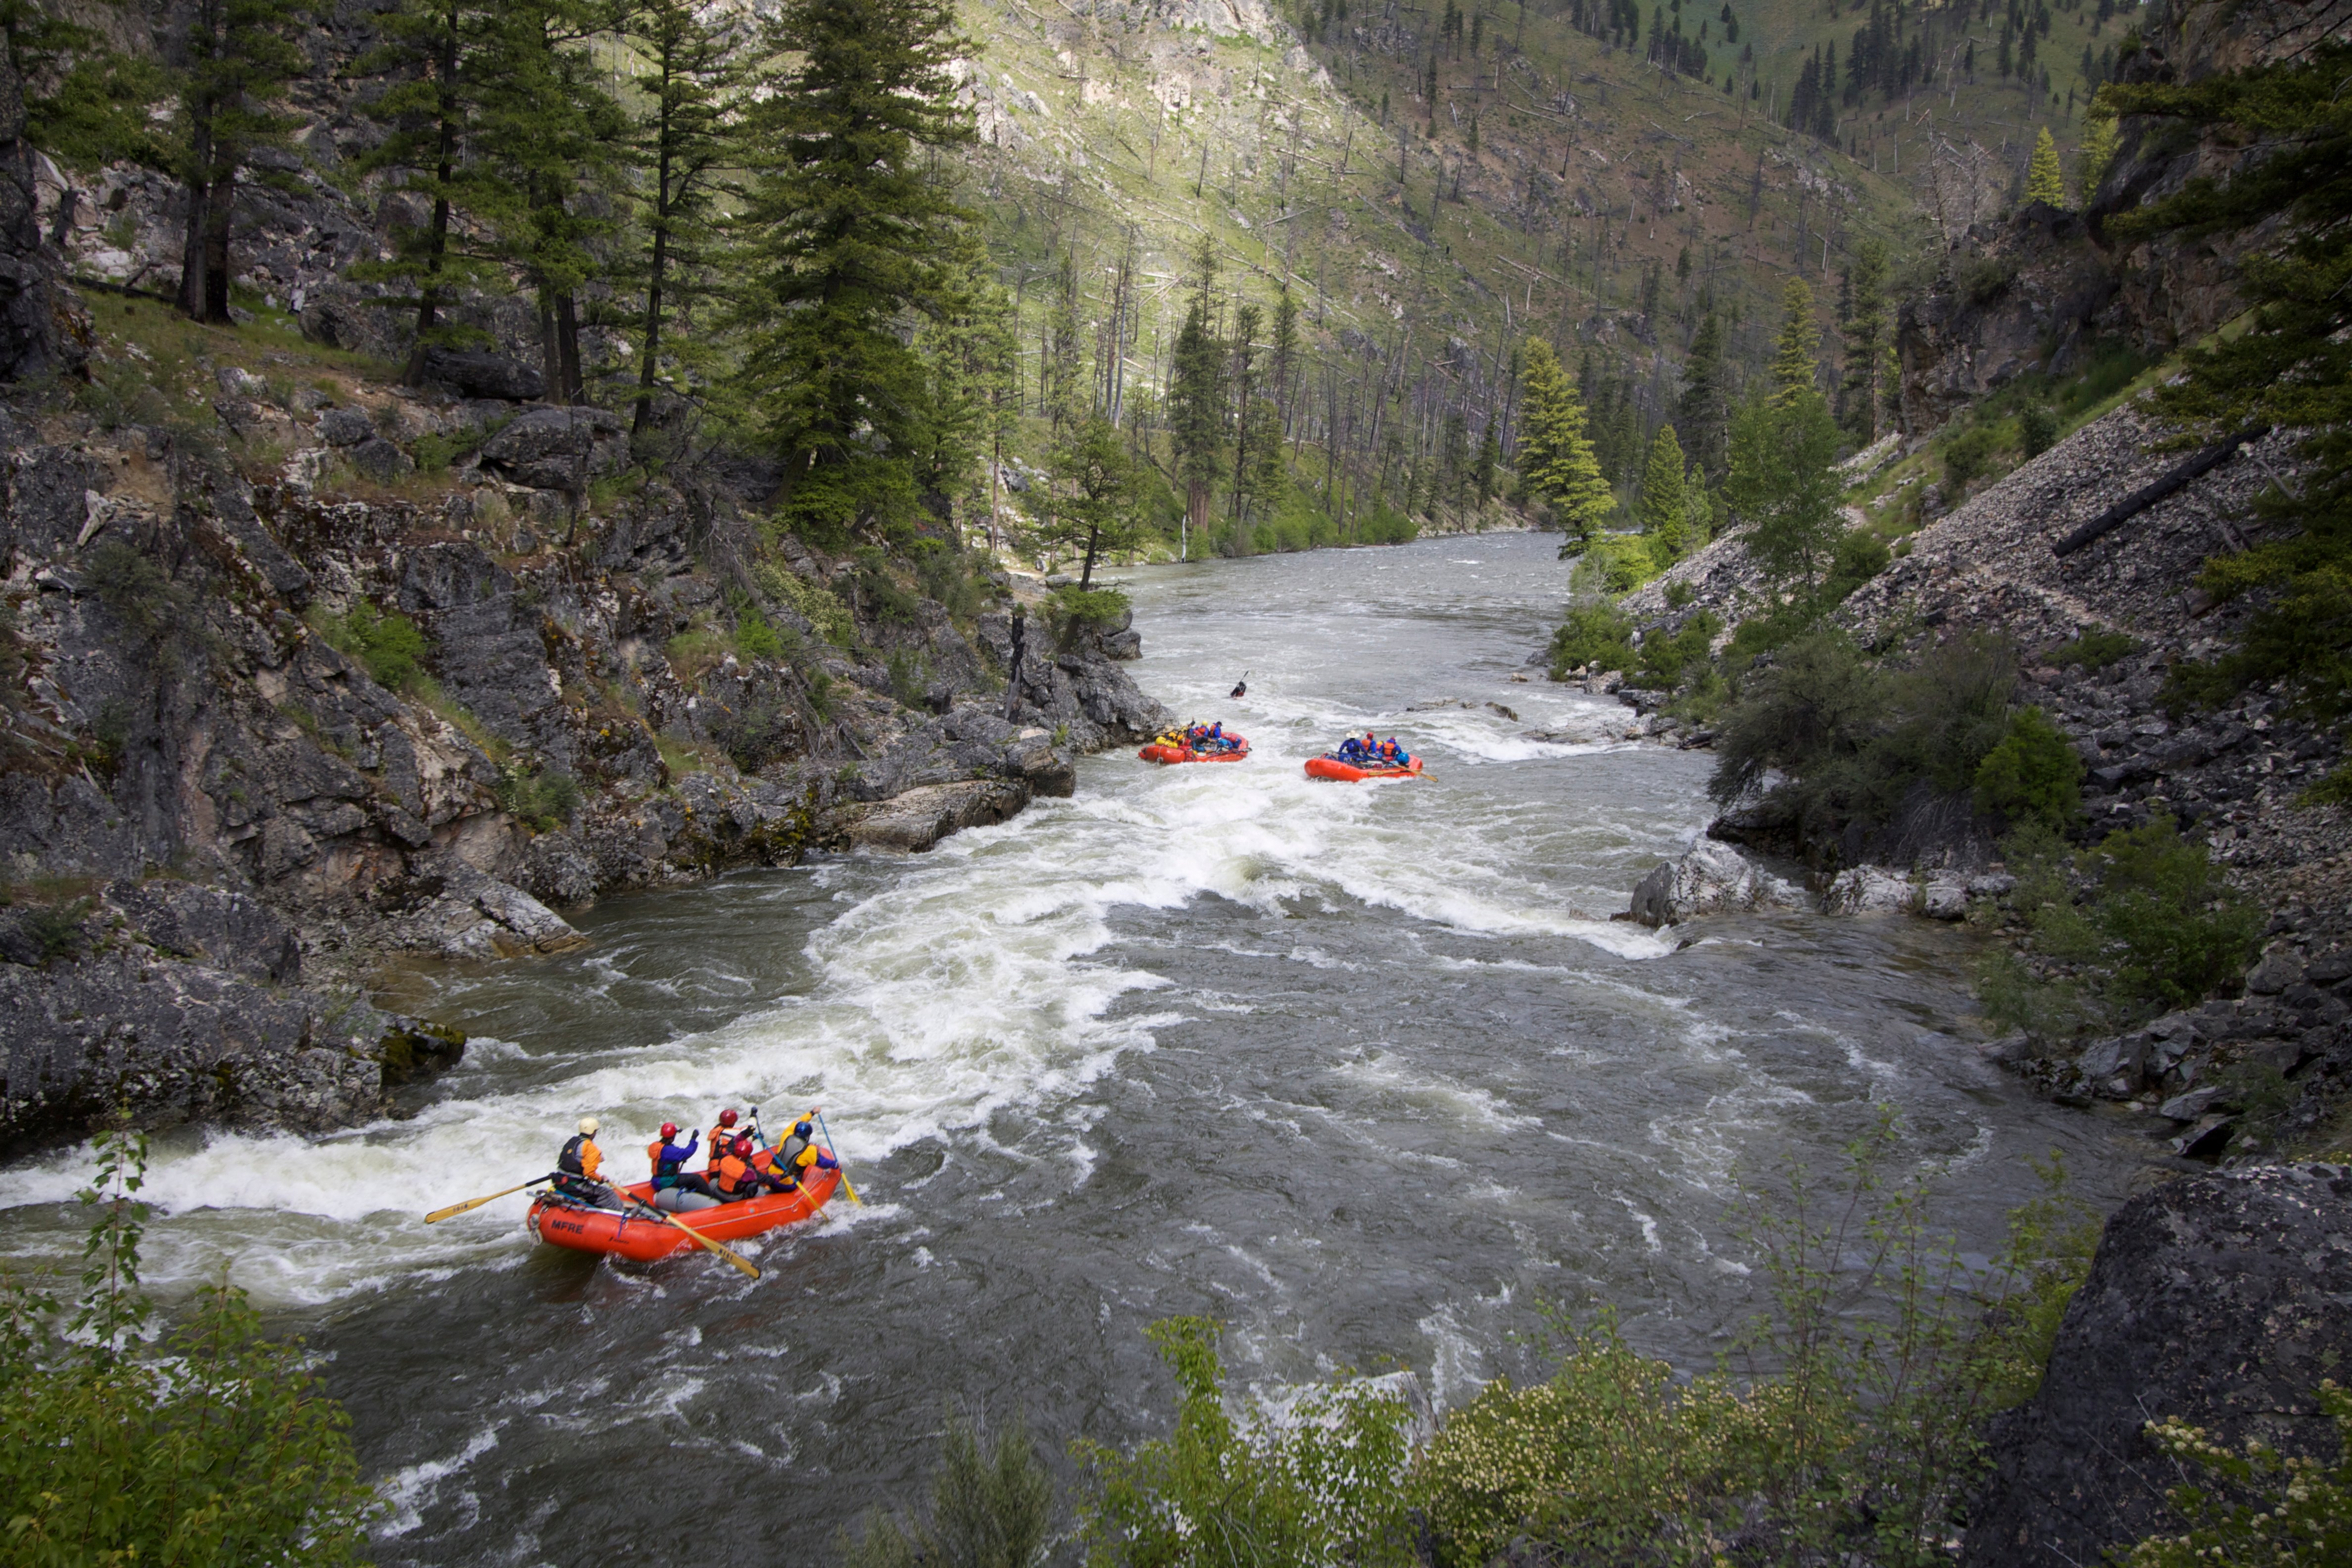 Rafting The Middle Fork Of The Salmon River In Idaho